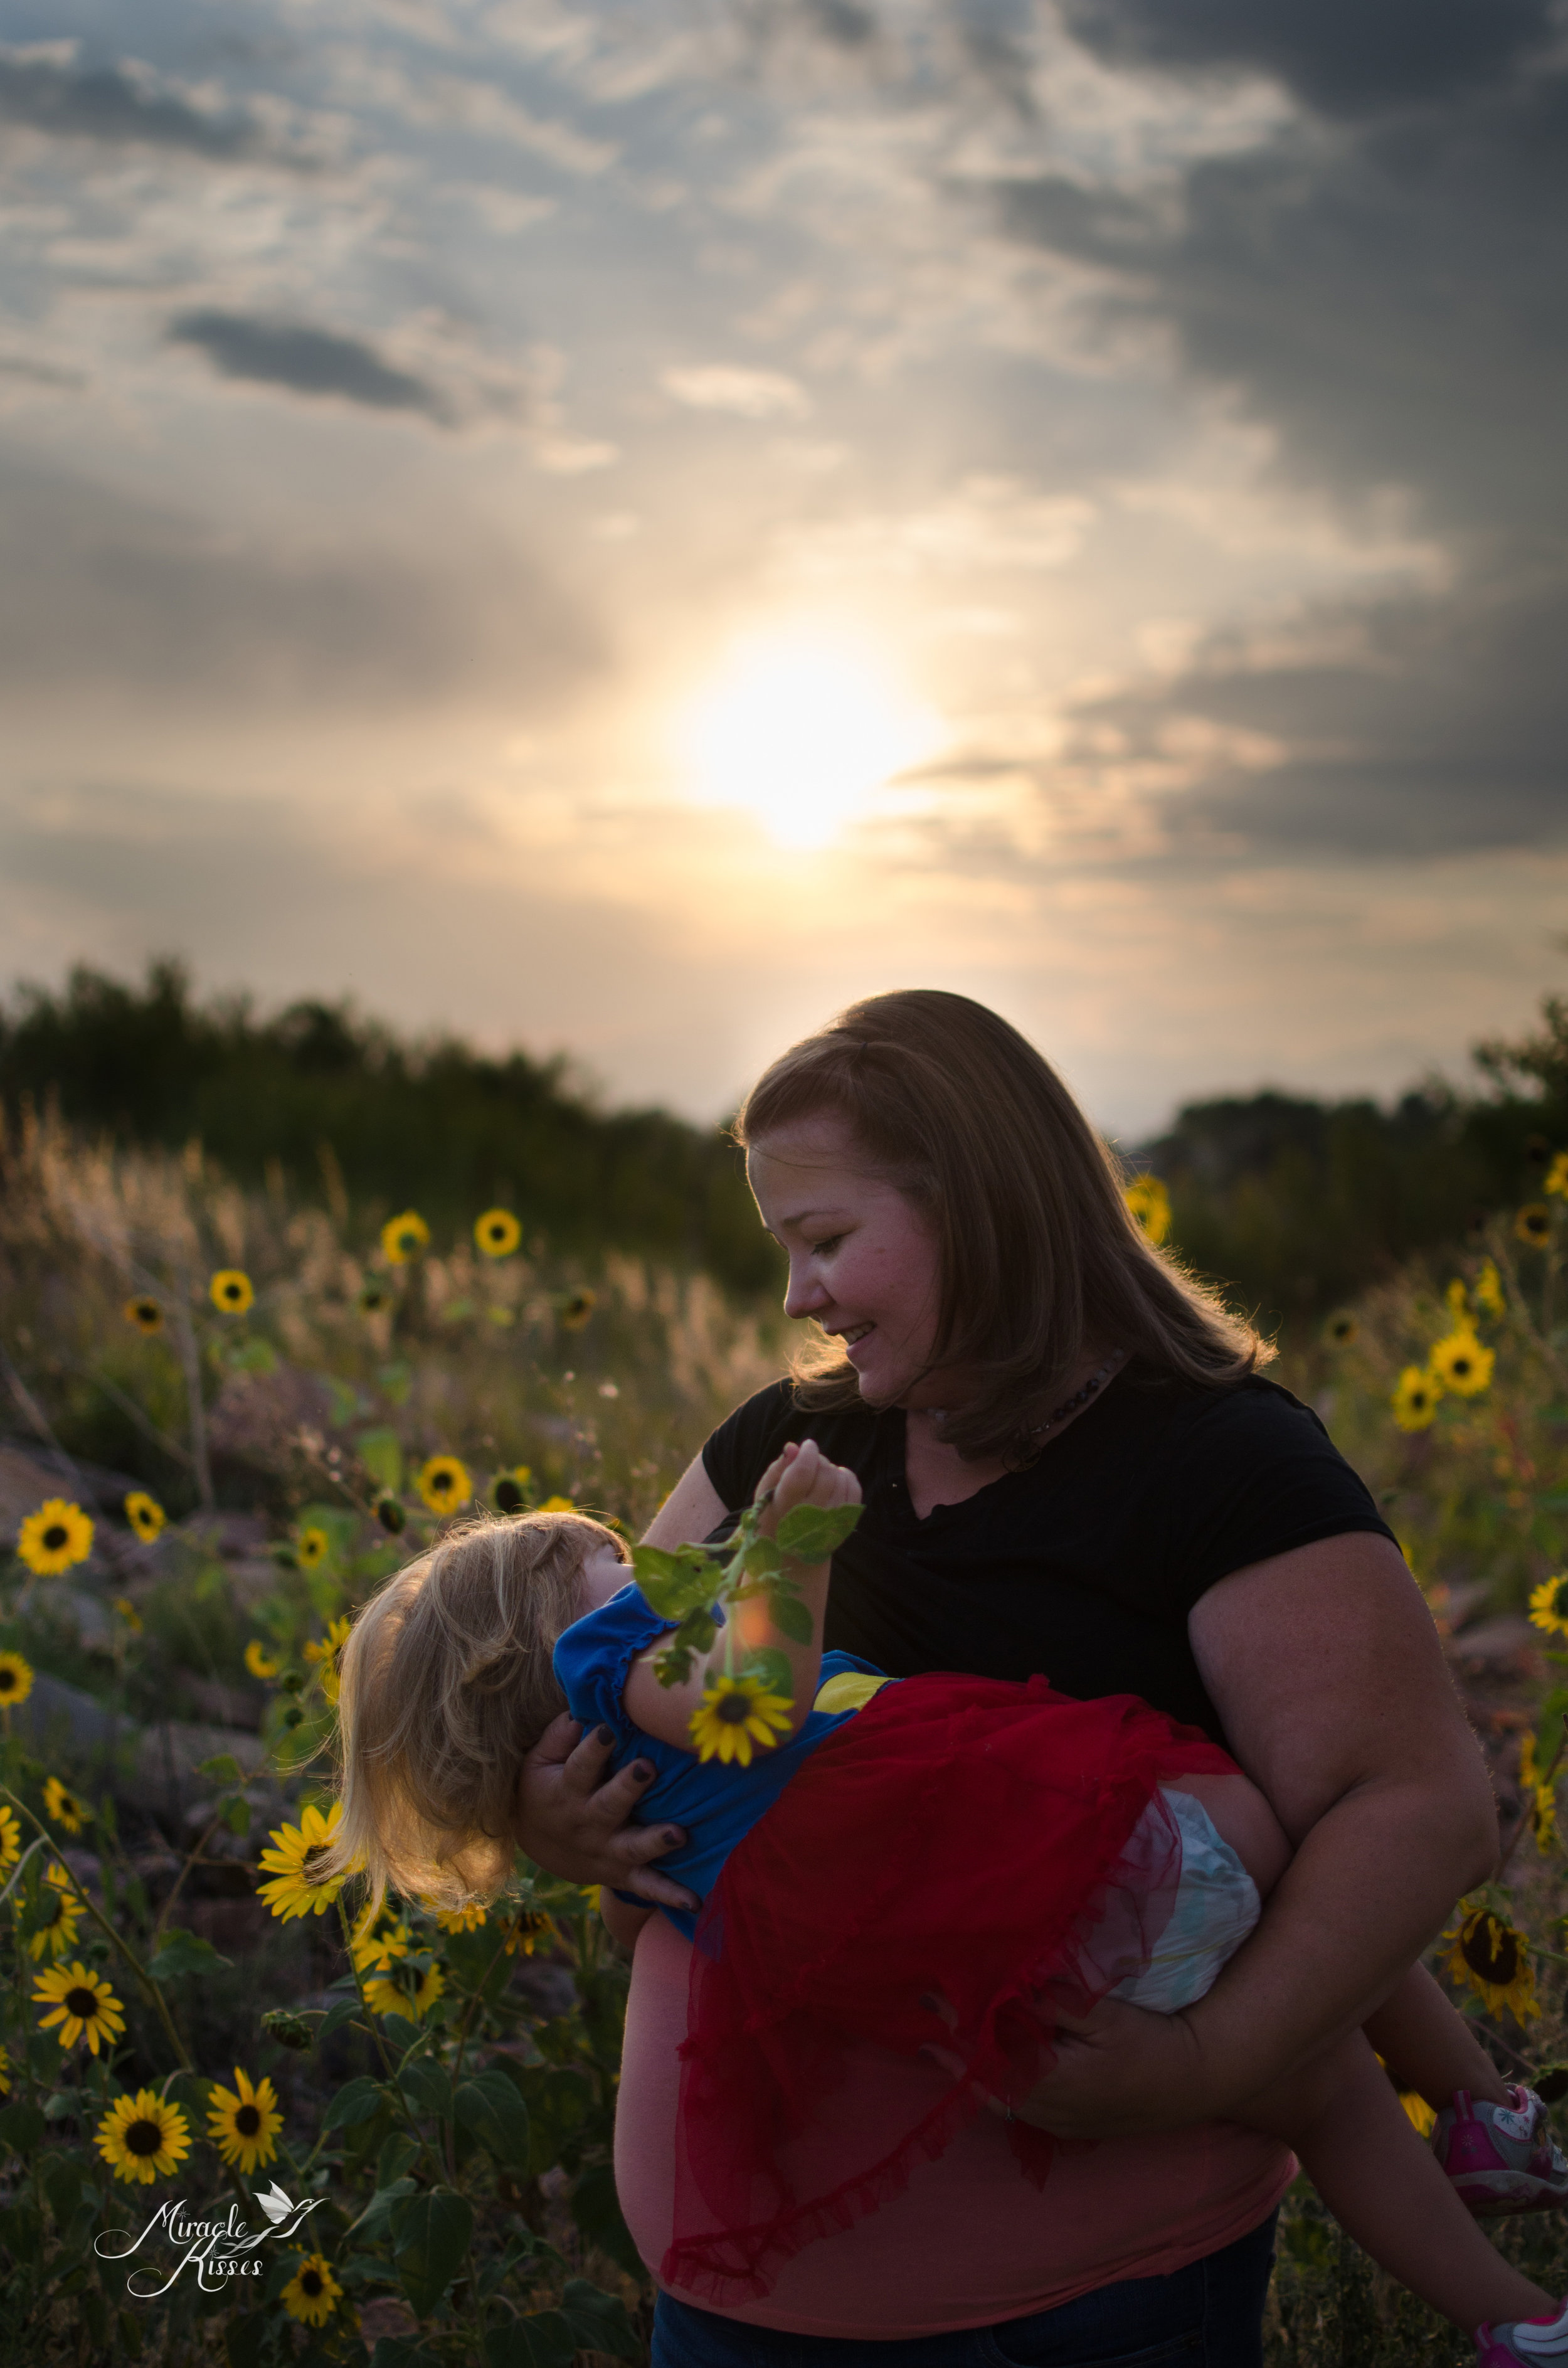 miracle kisses, normalize breastfeeding, 31 days 31 stories